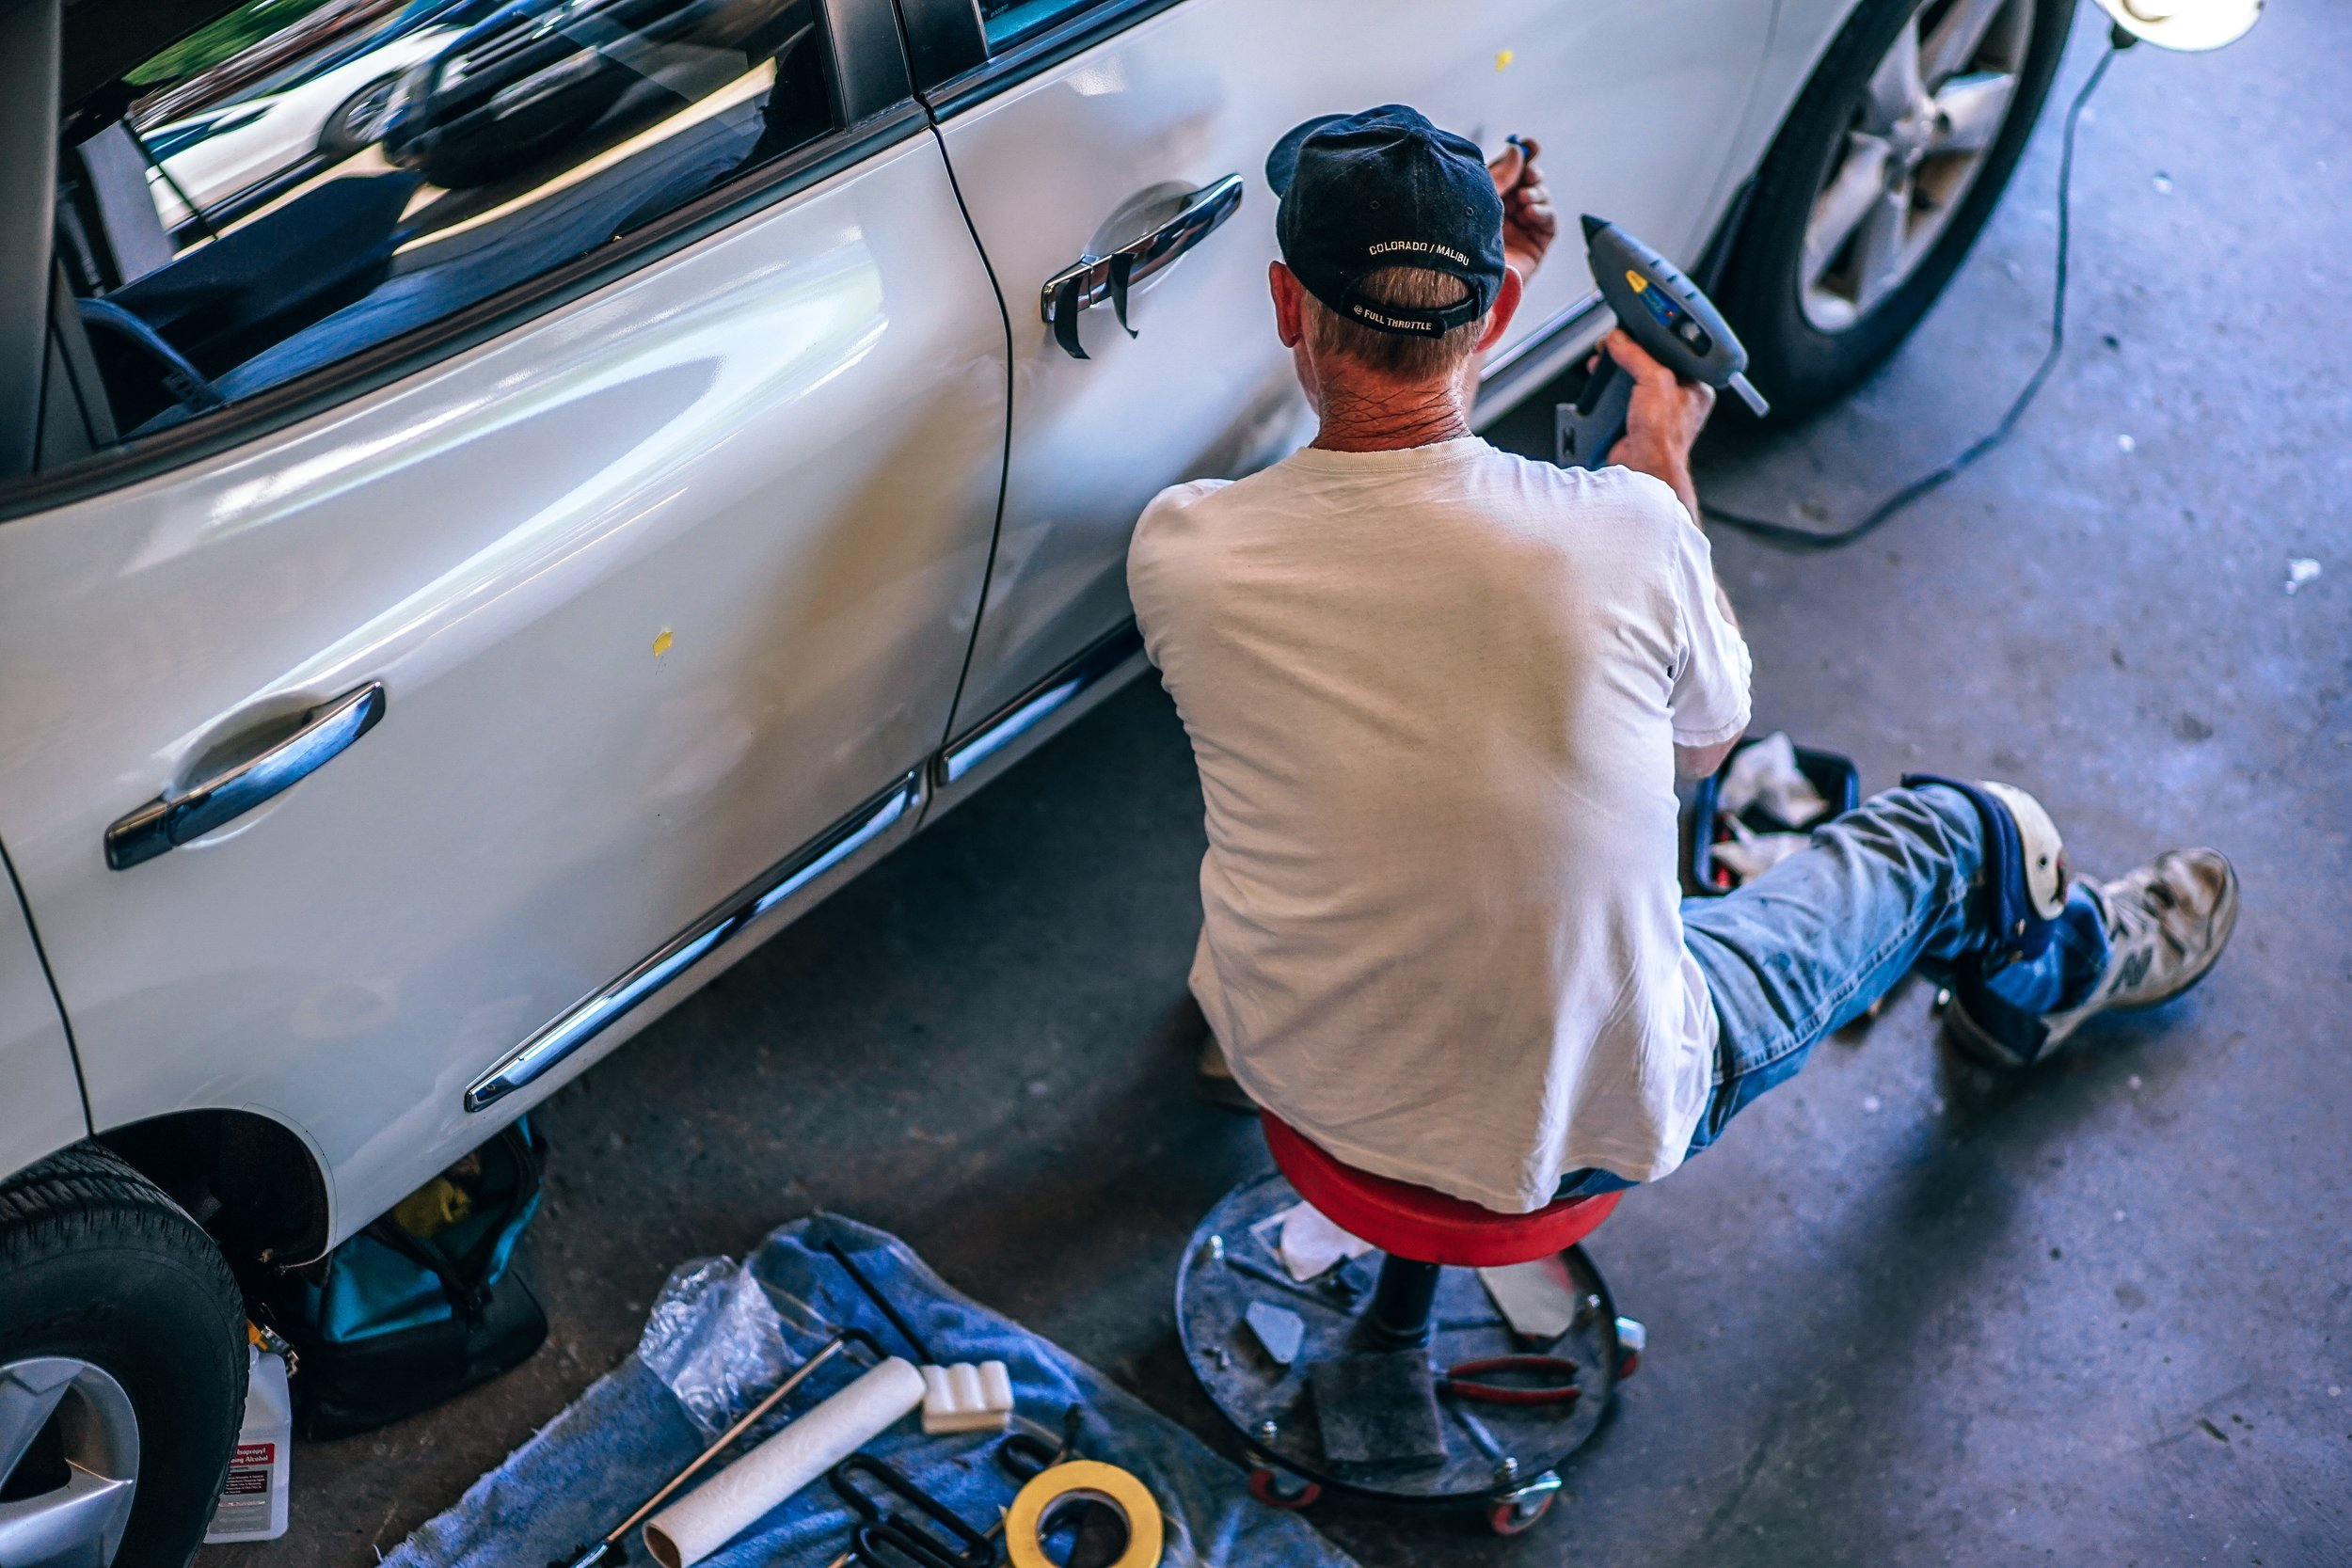 Body Repair - The proper repair of collision damage is critical to the safety and performance of your vehicle. Each vehicle is repaired to factory specifications in our state-of-the-art collision repair facility.